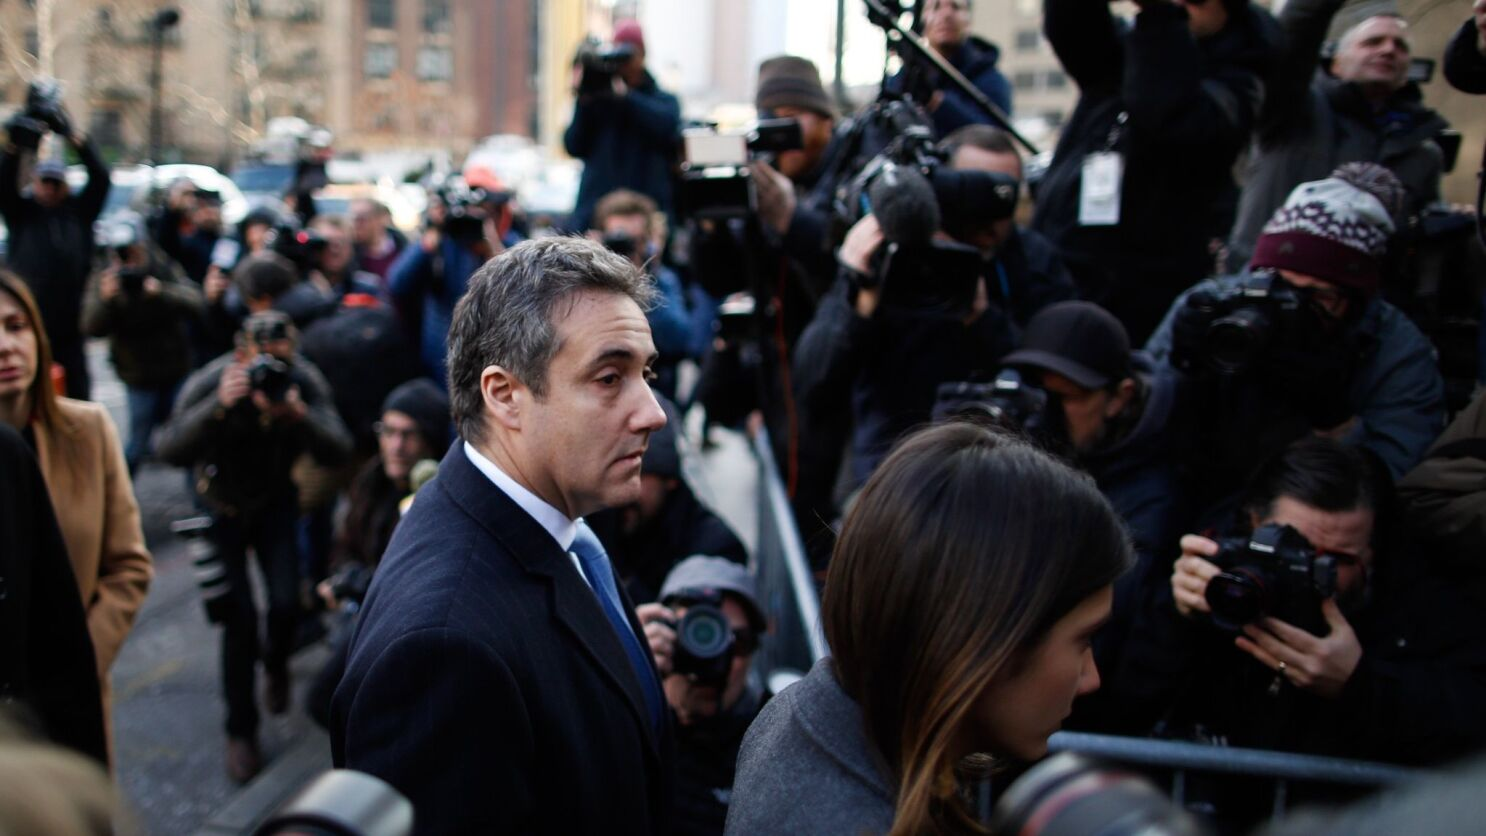 Court documents show close contact between Cohen and Trump during hush-money arrangements